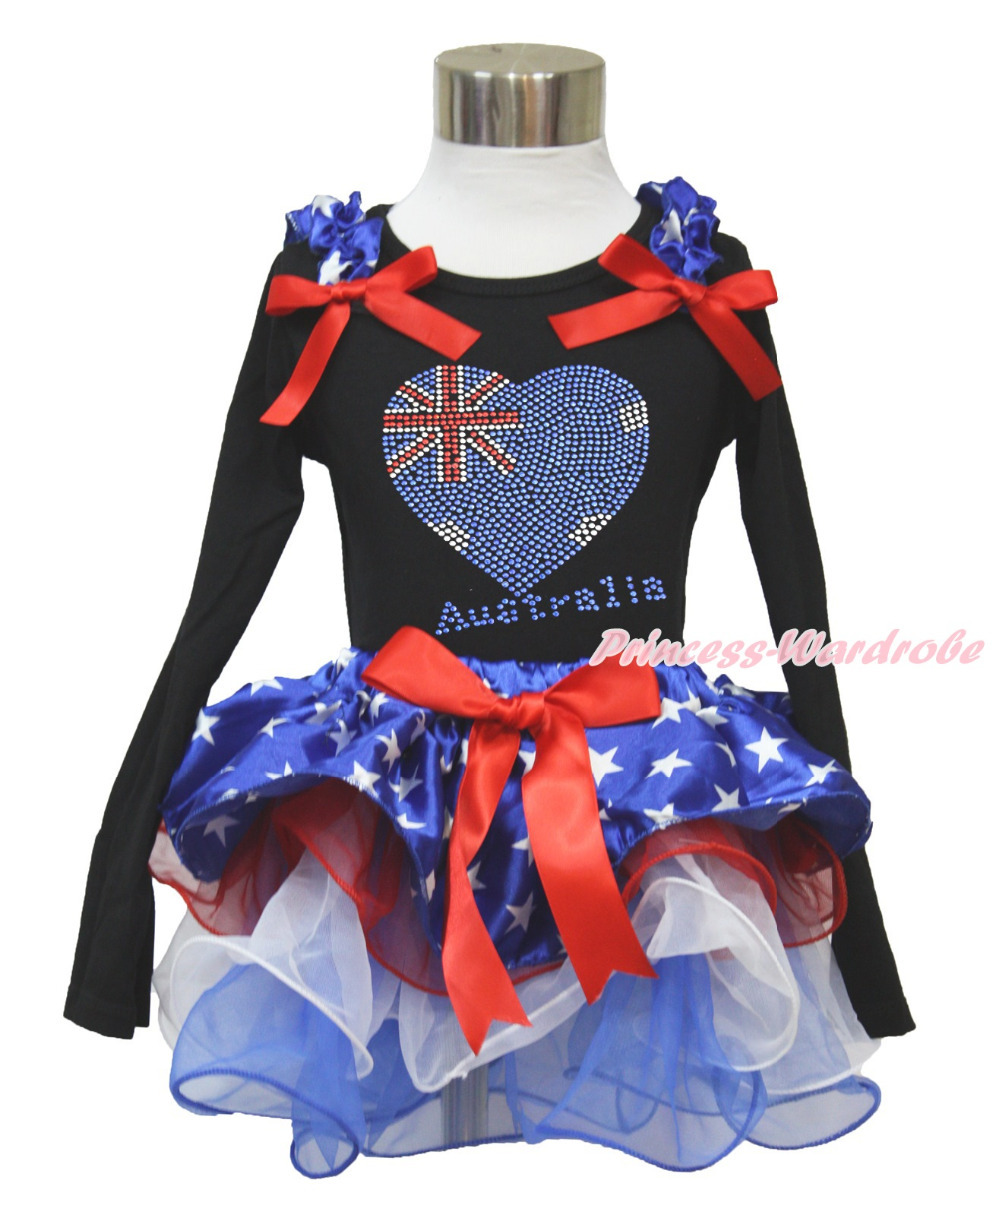 4th July Rhinestone Australia Heart Black L/S Top Patriotic Star Red White Petal Pettiskirt Girl NB-8Year MAMH232